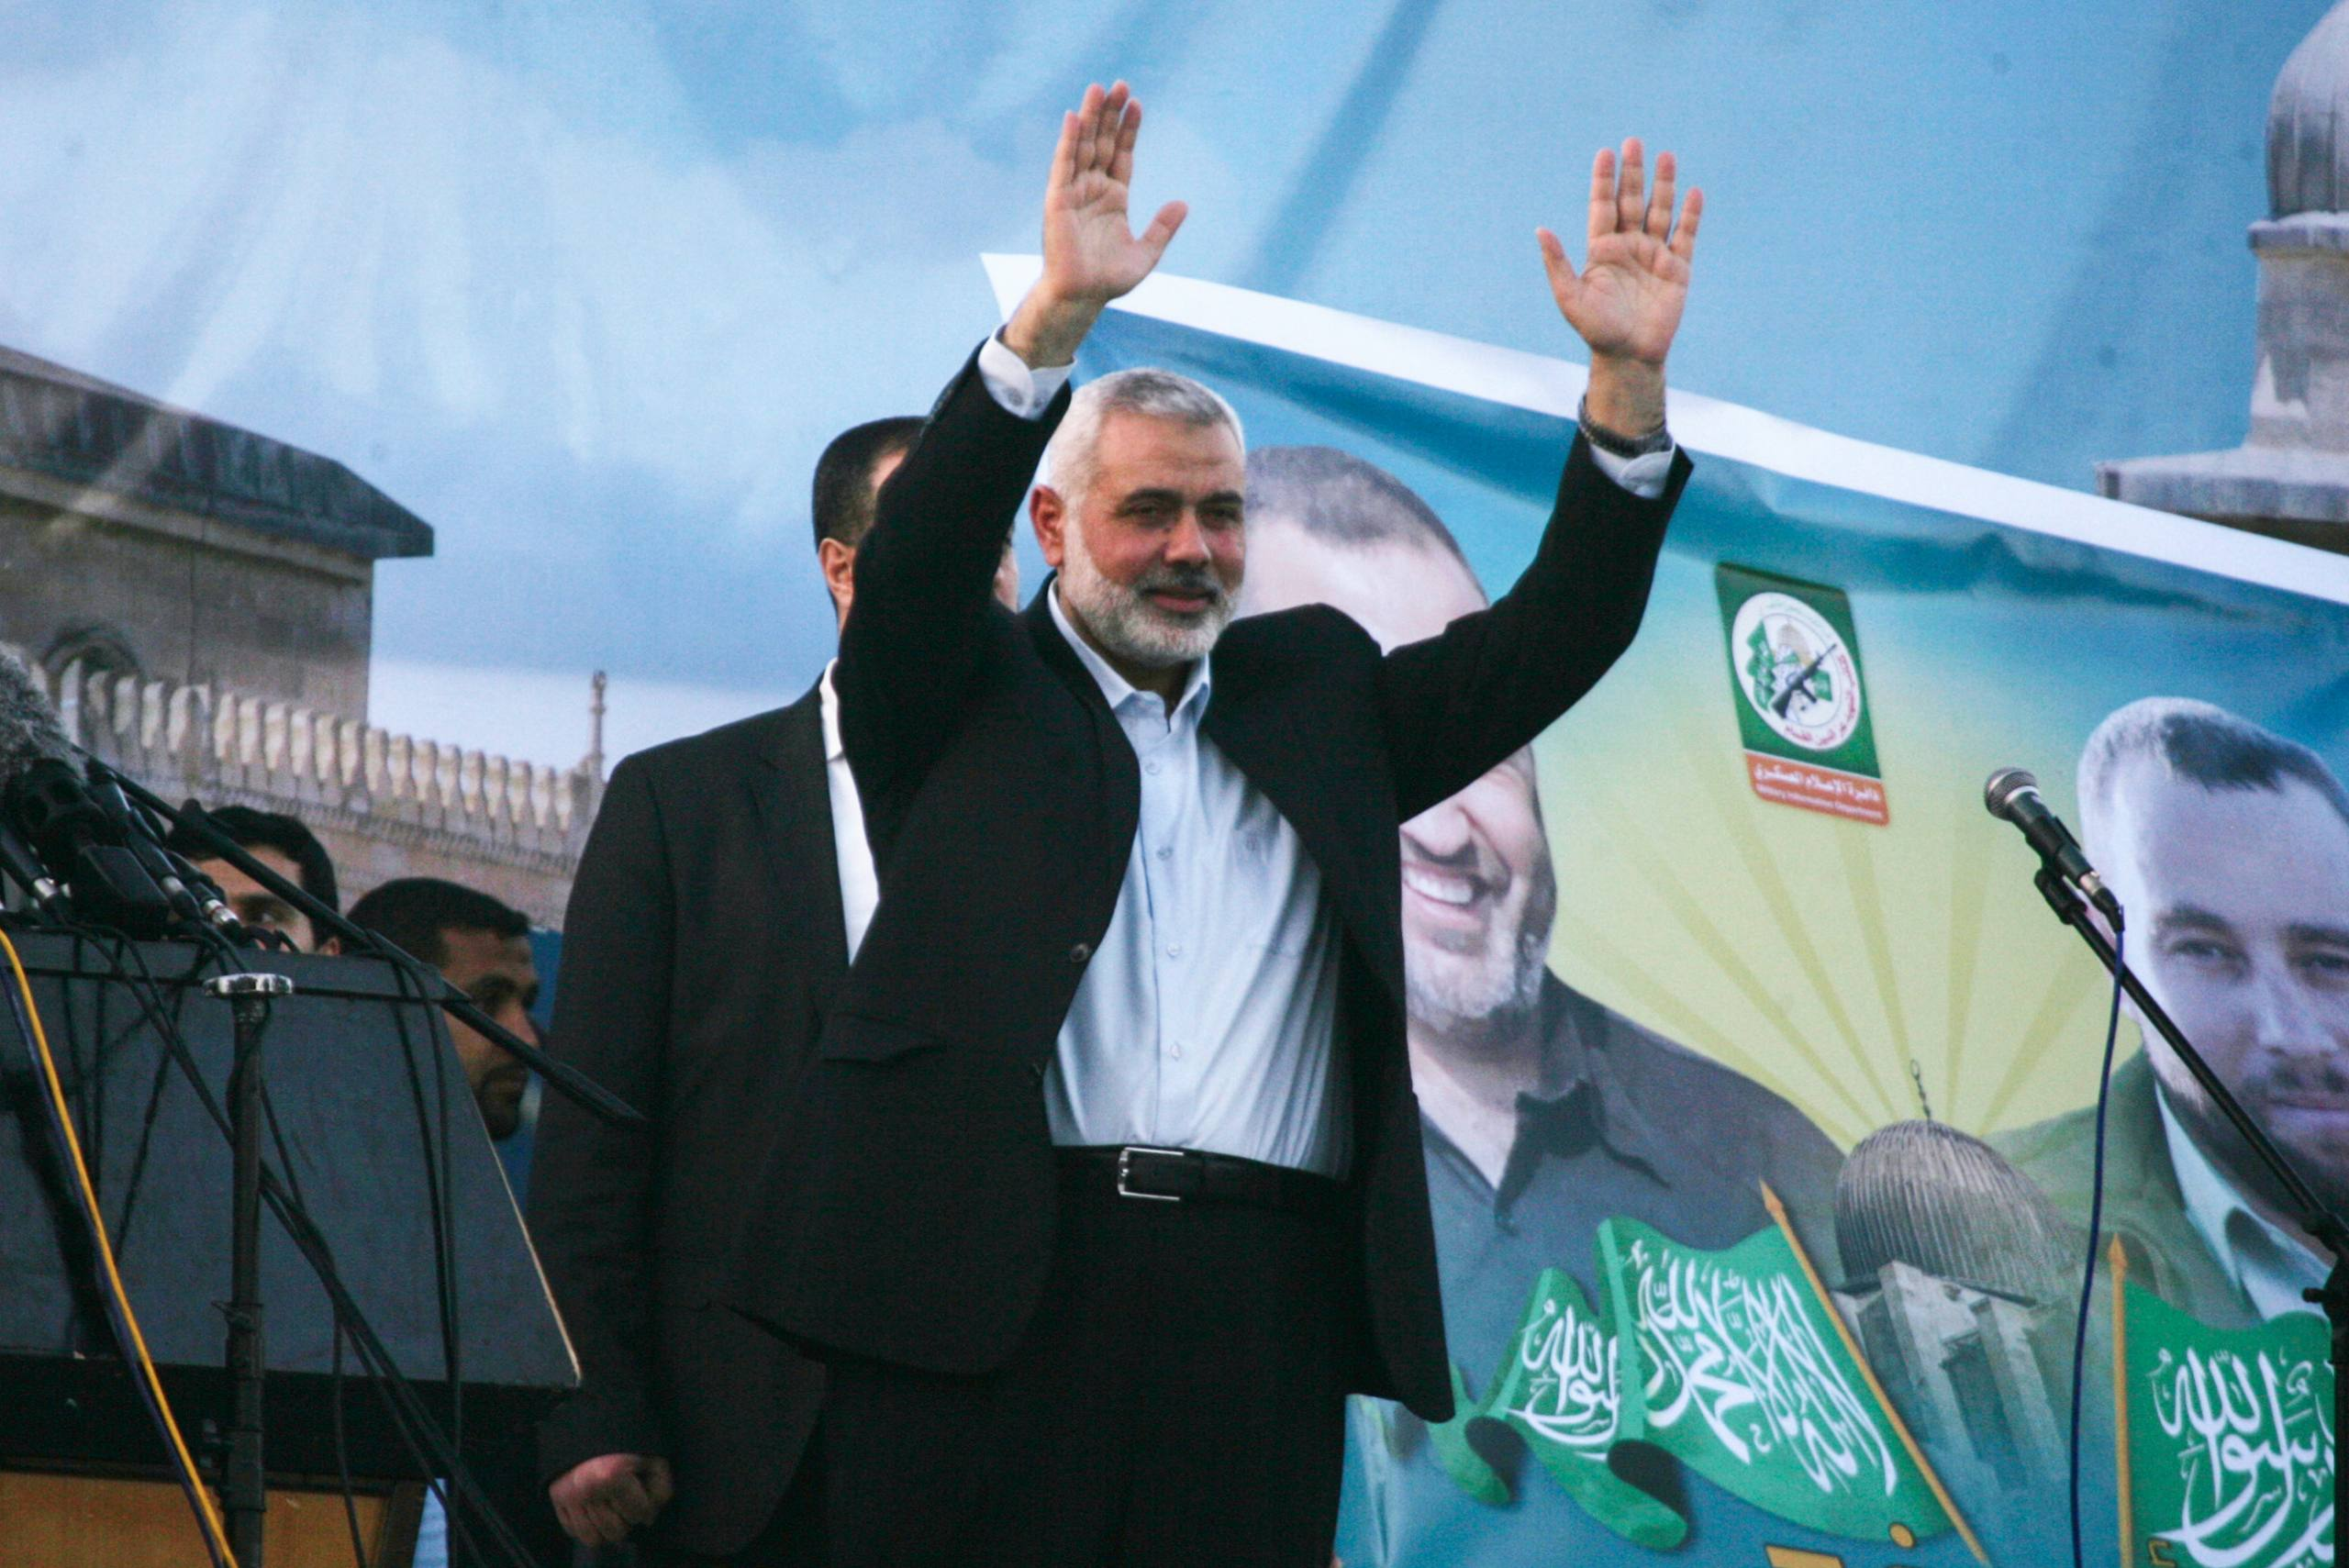 Head of the Hamas movment, Ismail Haniya, waves to the crowd during an anti-Israel rally on February 26, 2016, in the southern Gaza Strip town of Rafah. Photo by Abed Rahim Khatib/ Flash90 *** Local Caption *** çîàñ ôìñèéðéí ôìùúéðéí ôìñèéðé òæä àéñîòéì äðééä